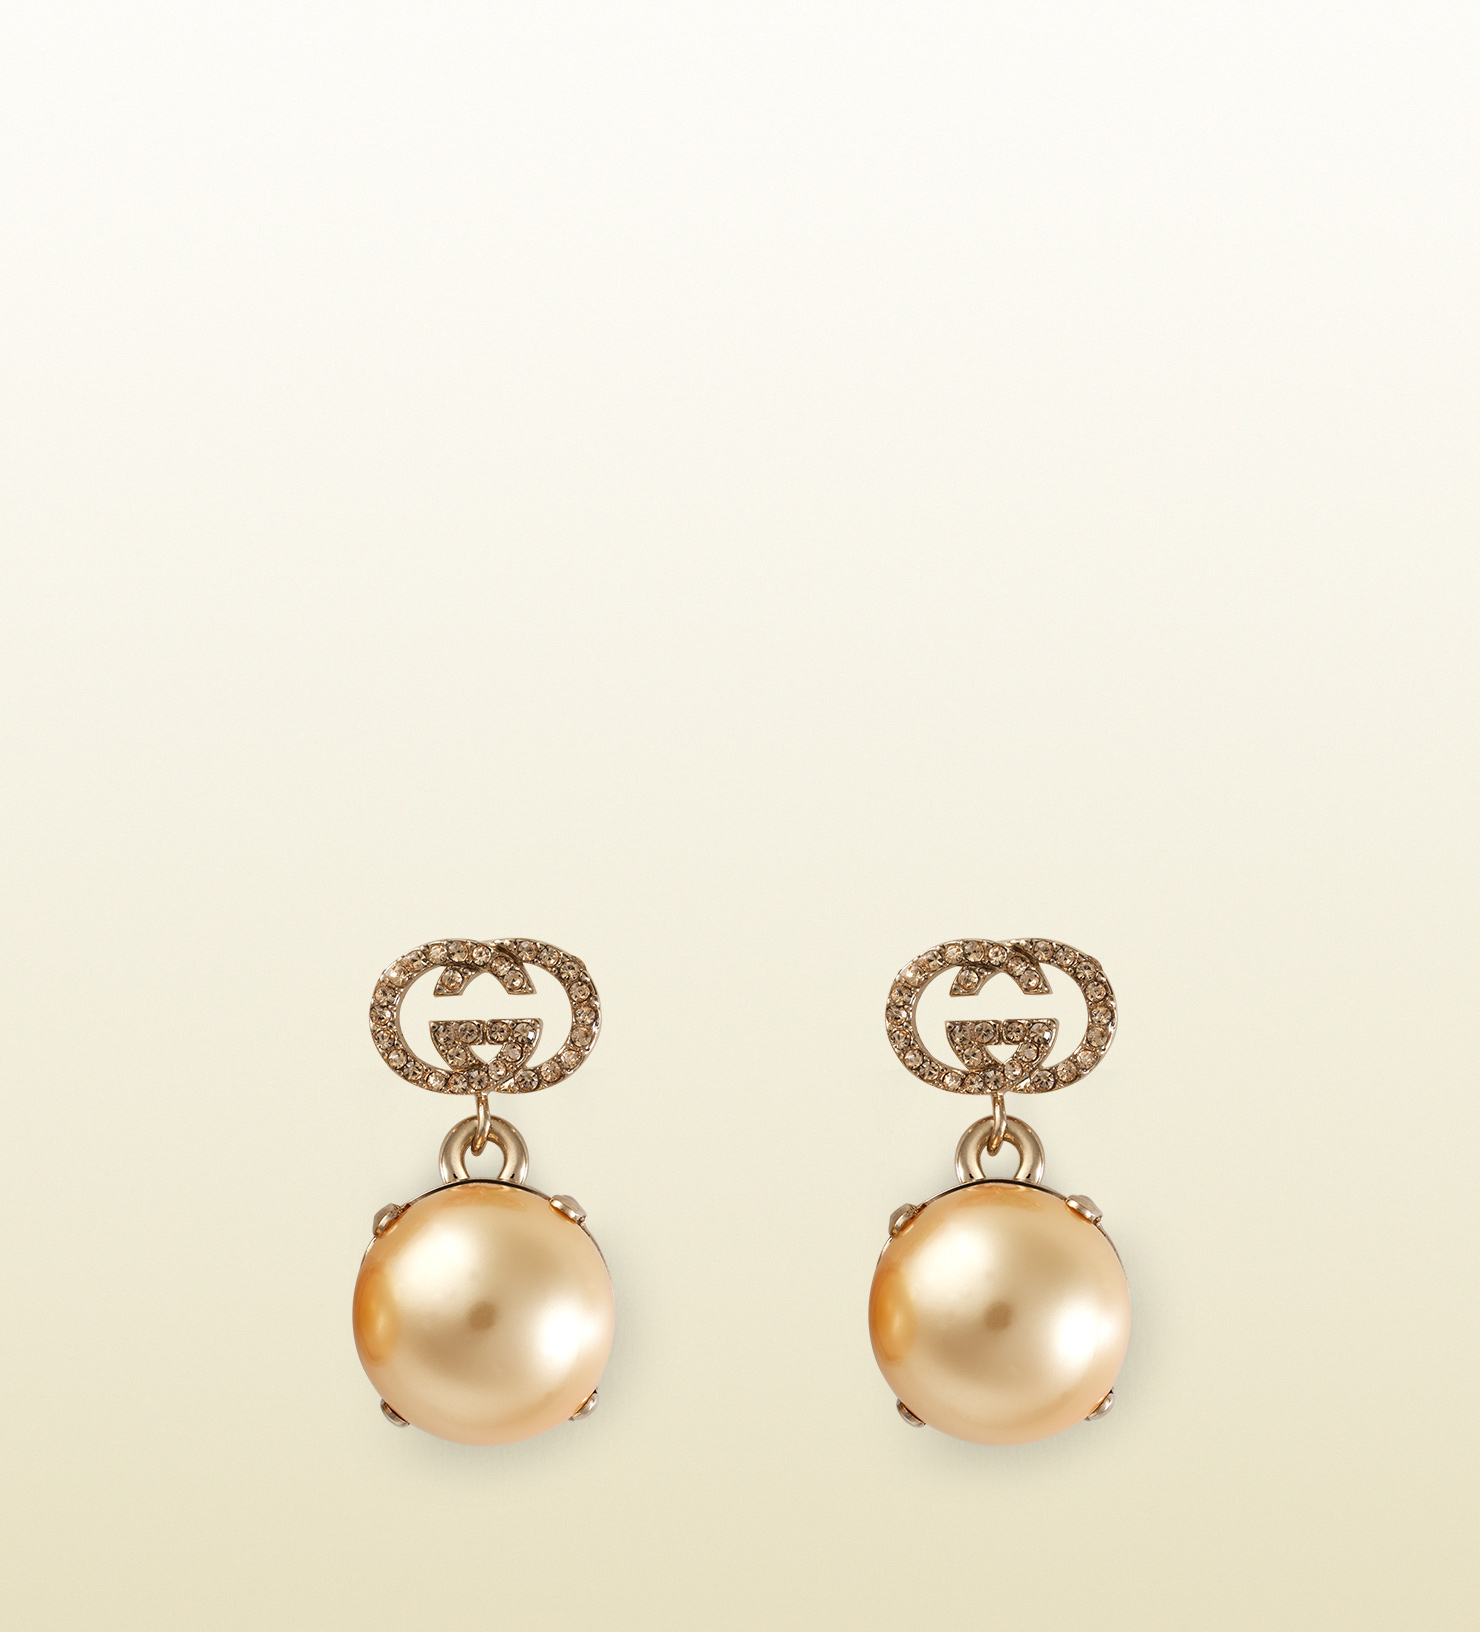 c22e2519675 Gucci Earrings With Pearl Effect Glass in Metallic - Lyst